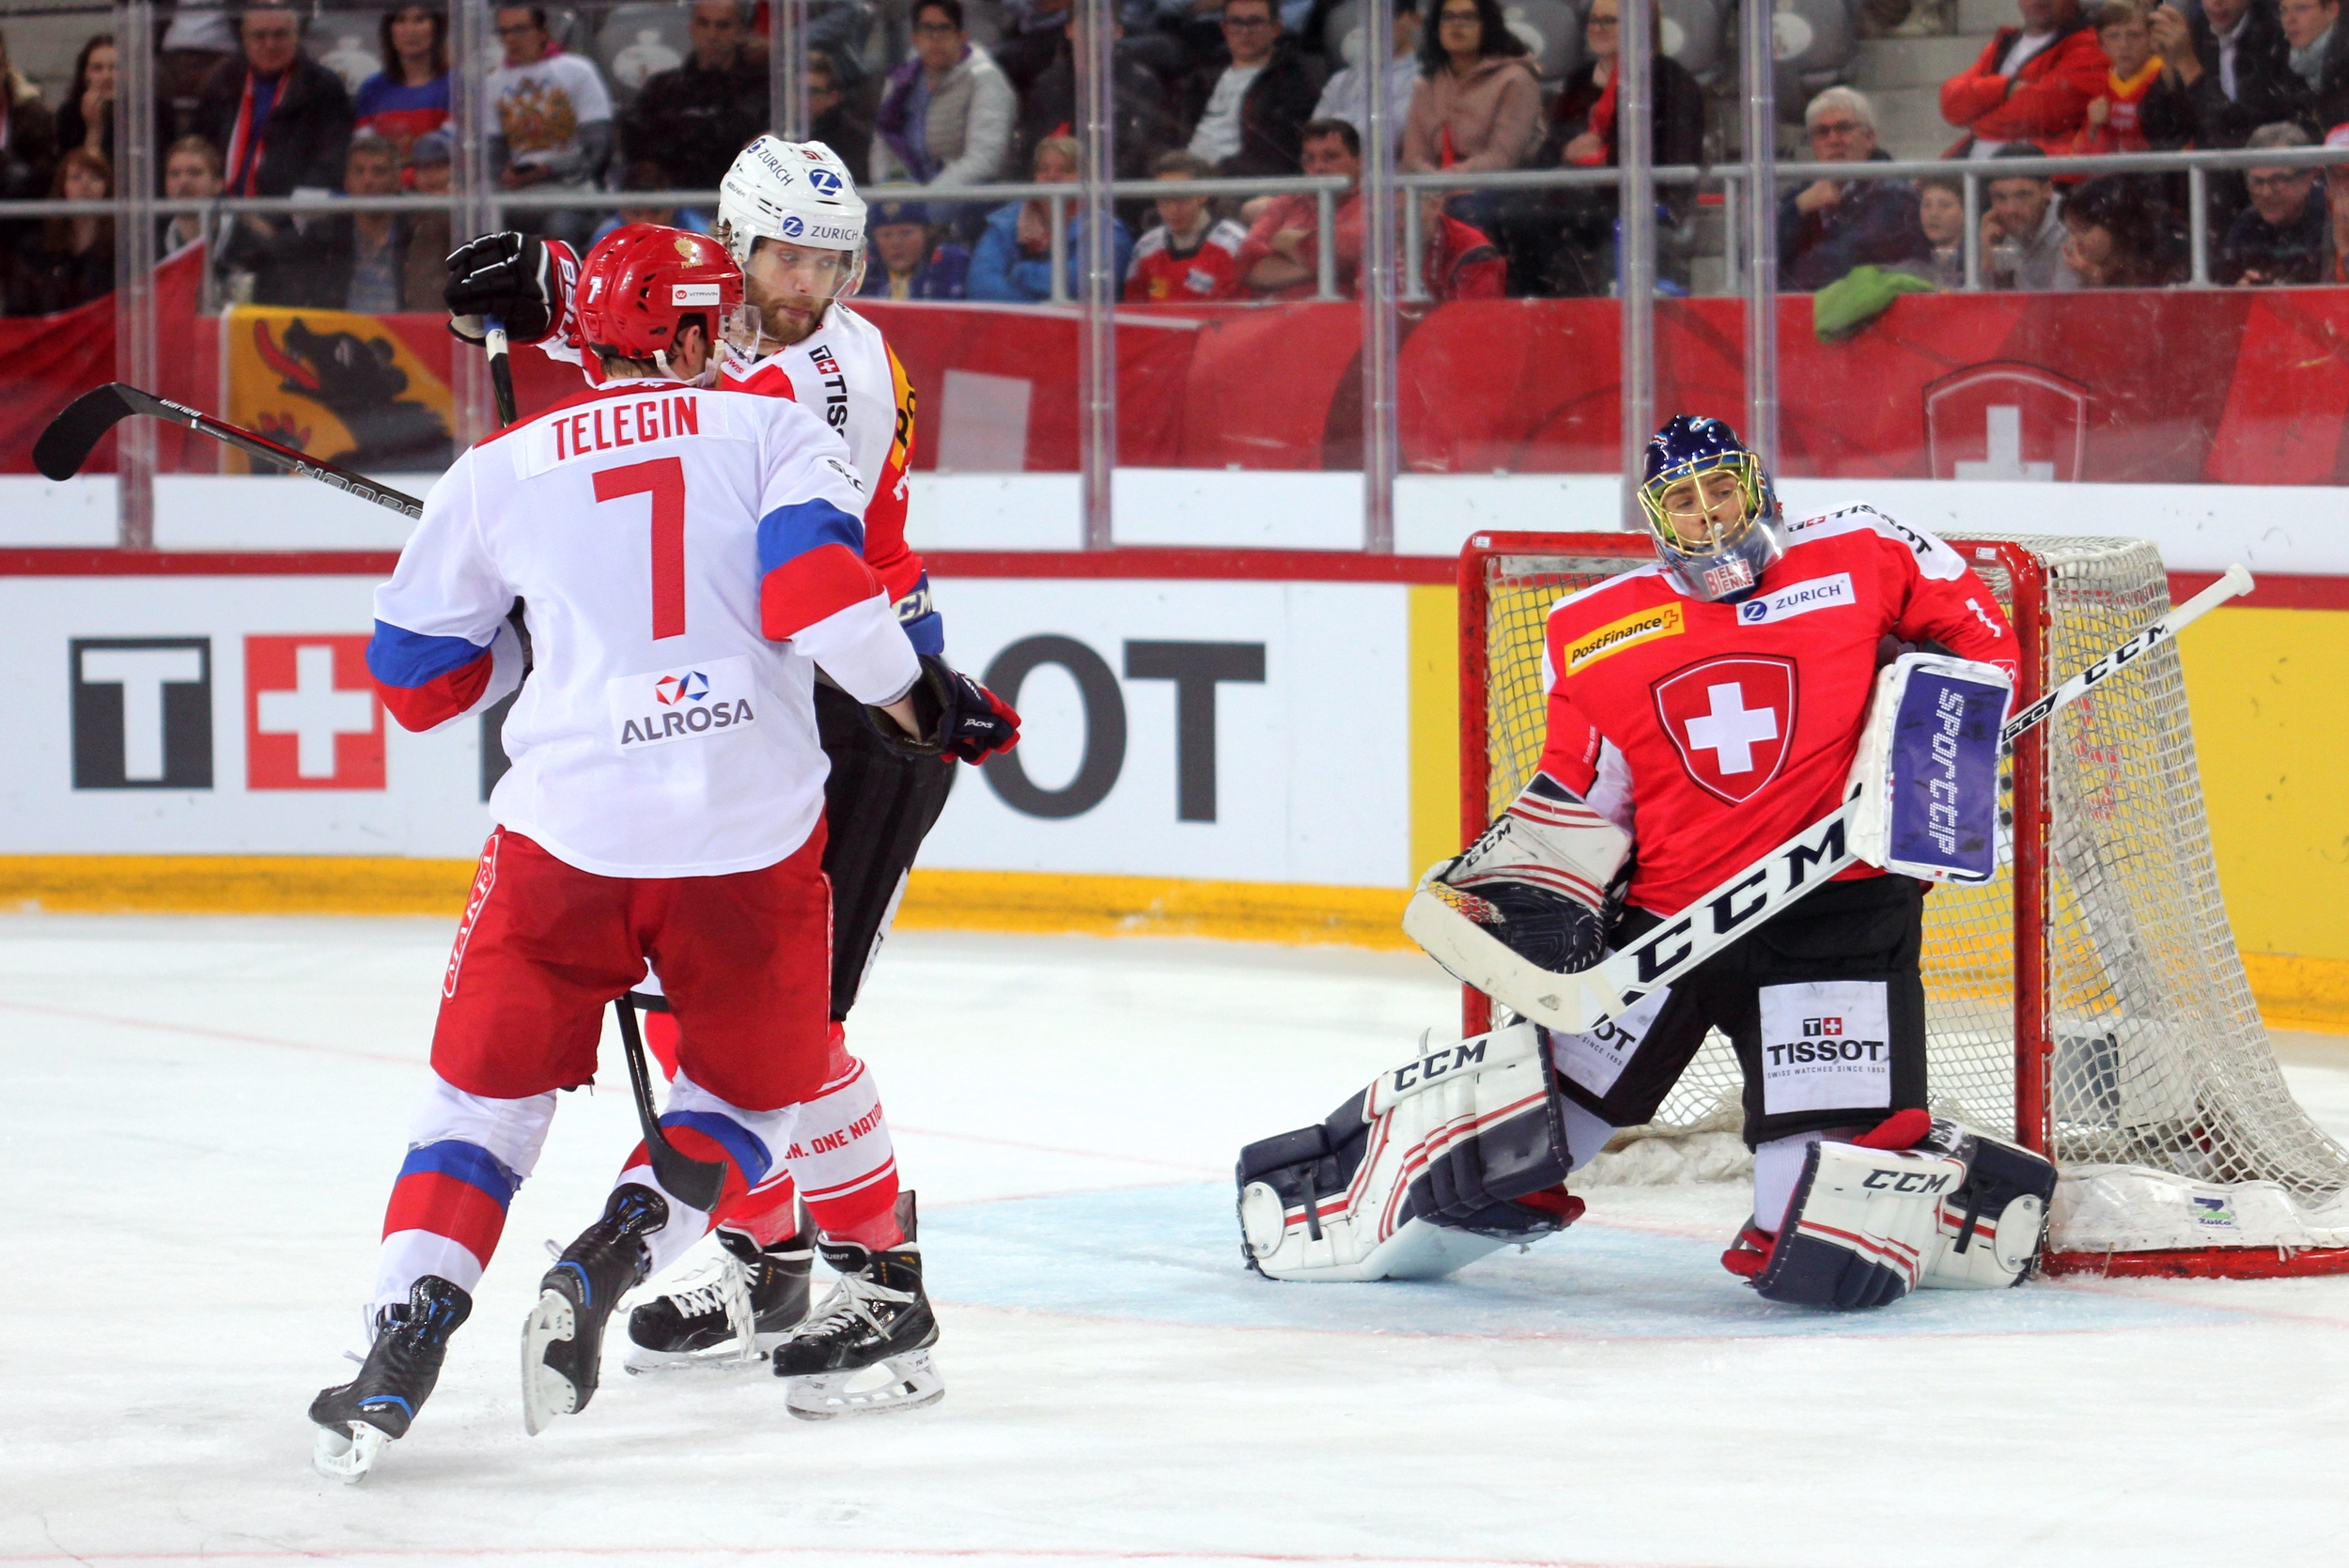 File:Euro Hockey Challenge, Switzerland vs. Russia, 22nd April 2017 47.JPG  - Wikimedia Commons